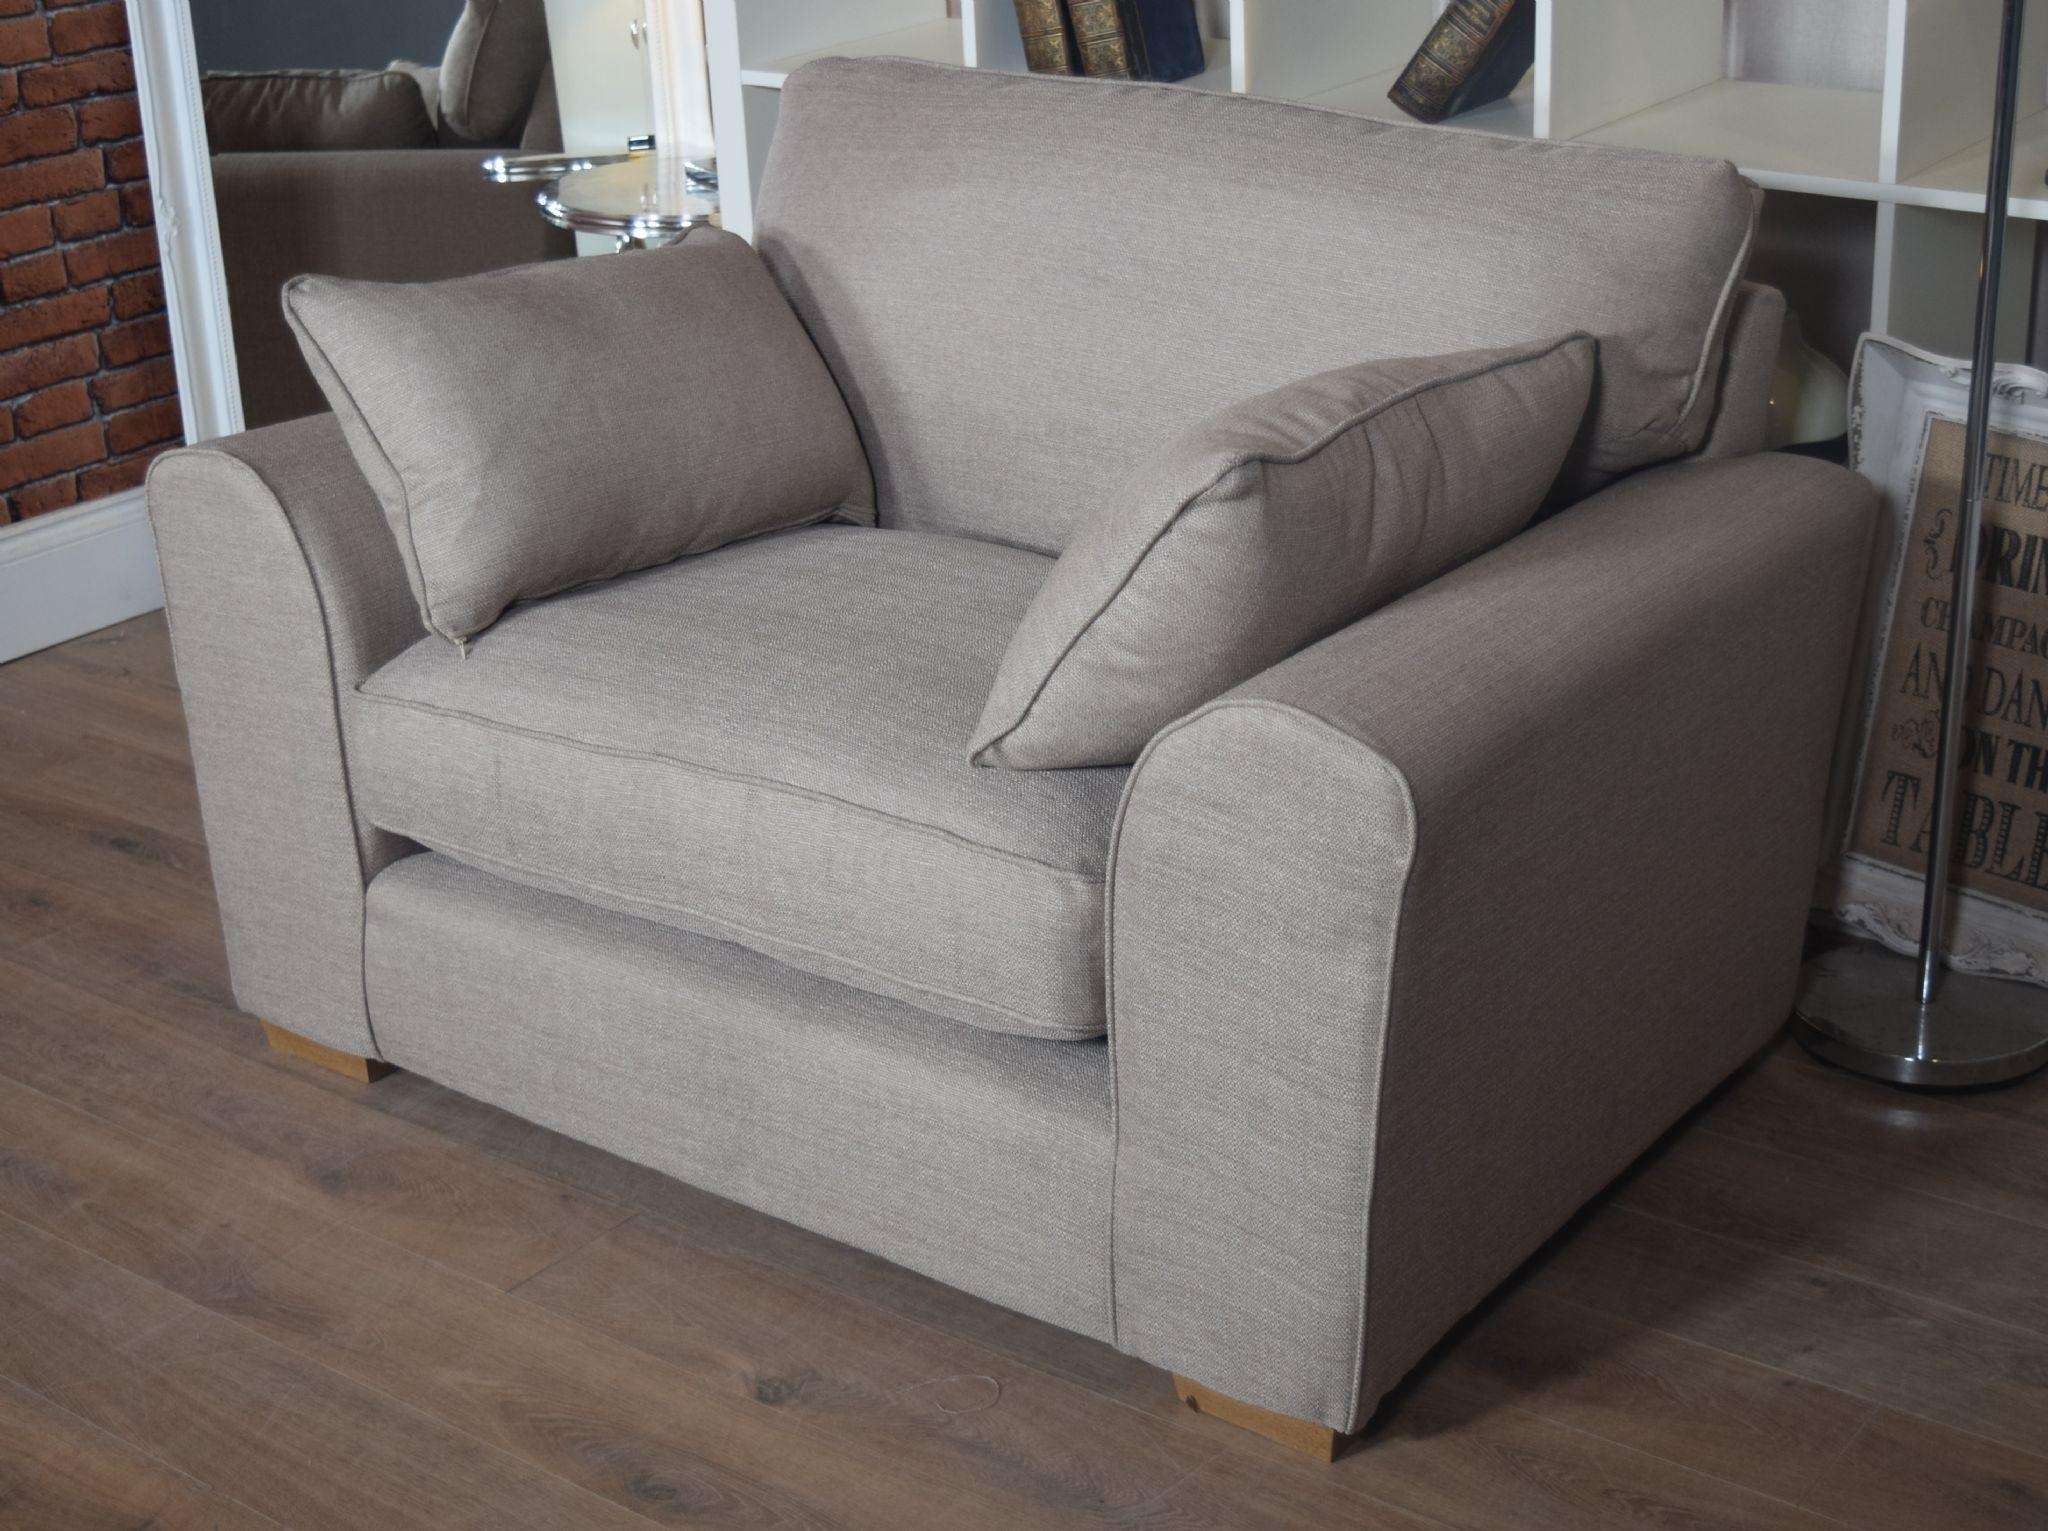 Set New Ashdown 3 Seater Sofa & Cuddle Chair Set – Beige Mink Throughout 3 Seater Sofa And Cuddle Chairs (View 8 of 20)